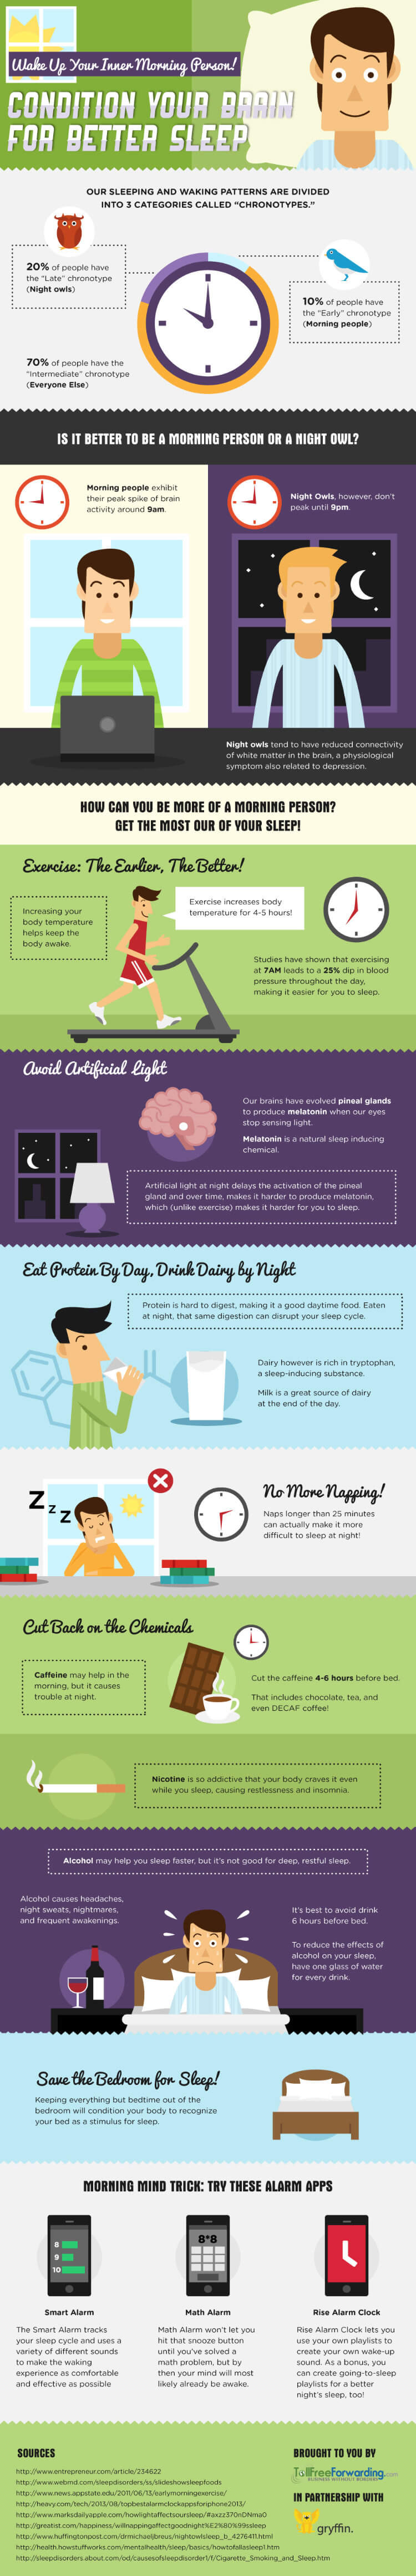 Wake Up Your Inner Morning Person Condition Your Brain for Better Sleep